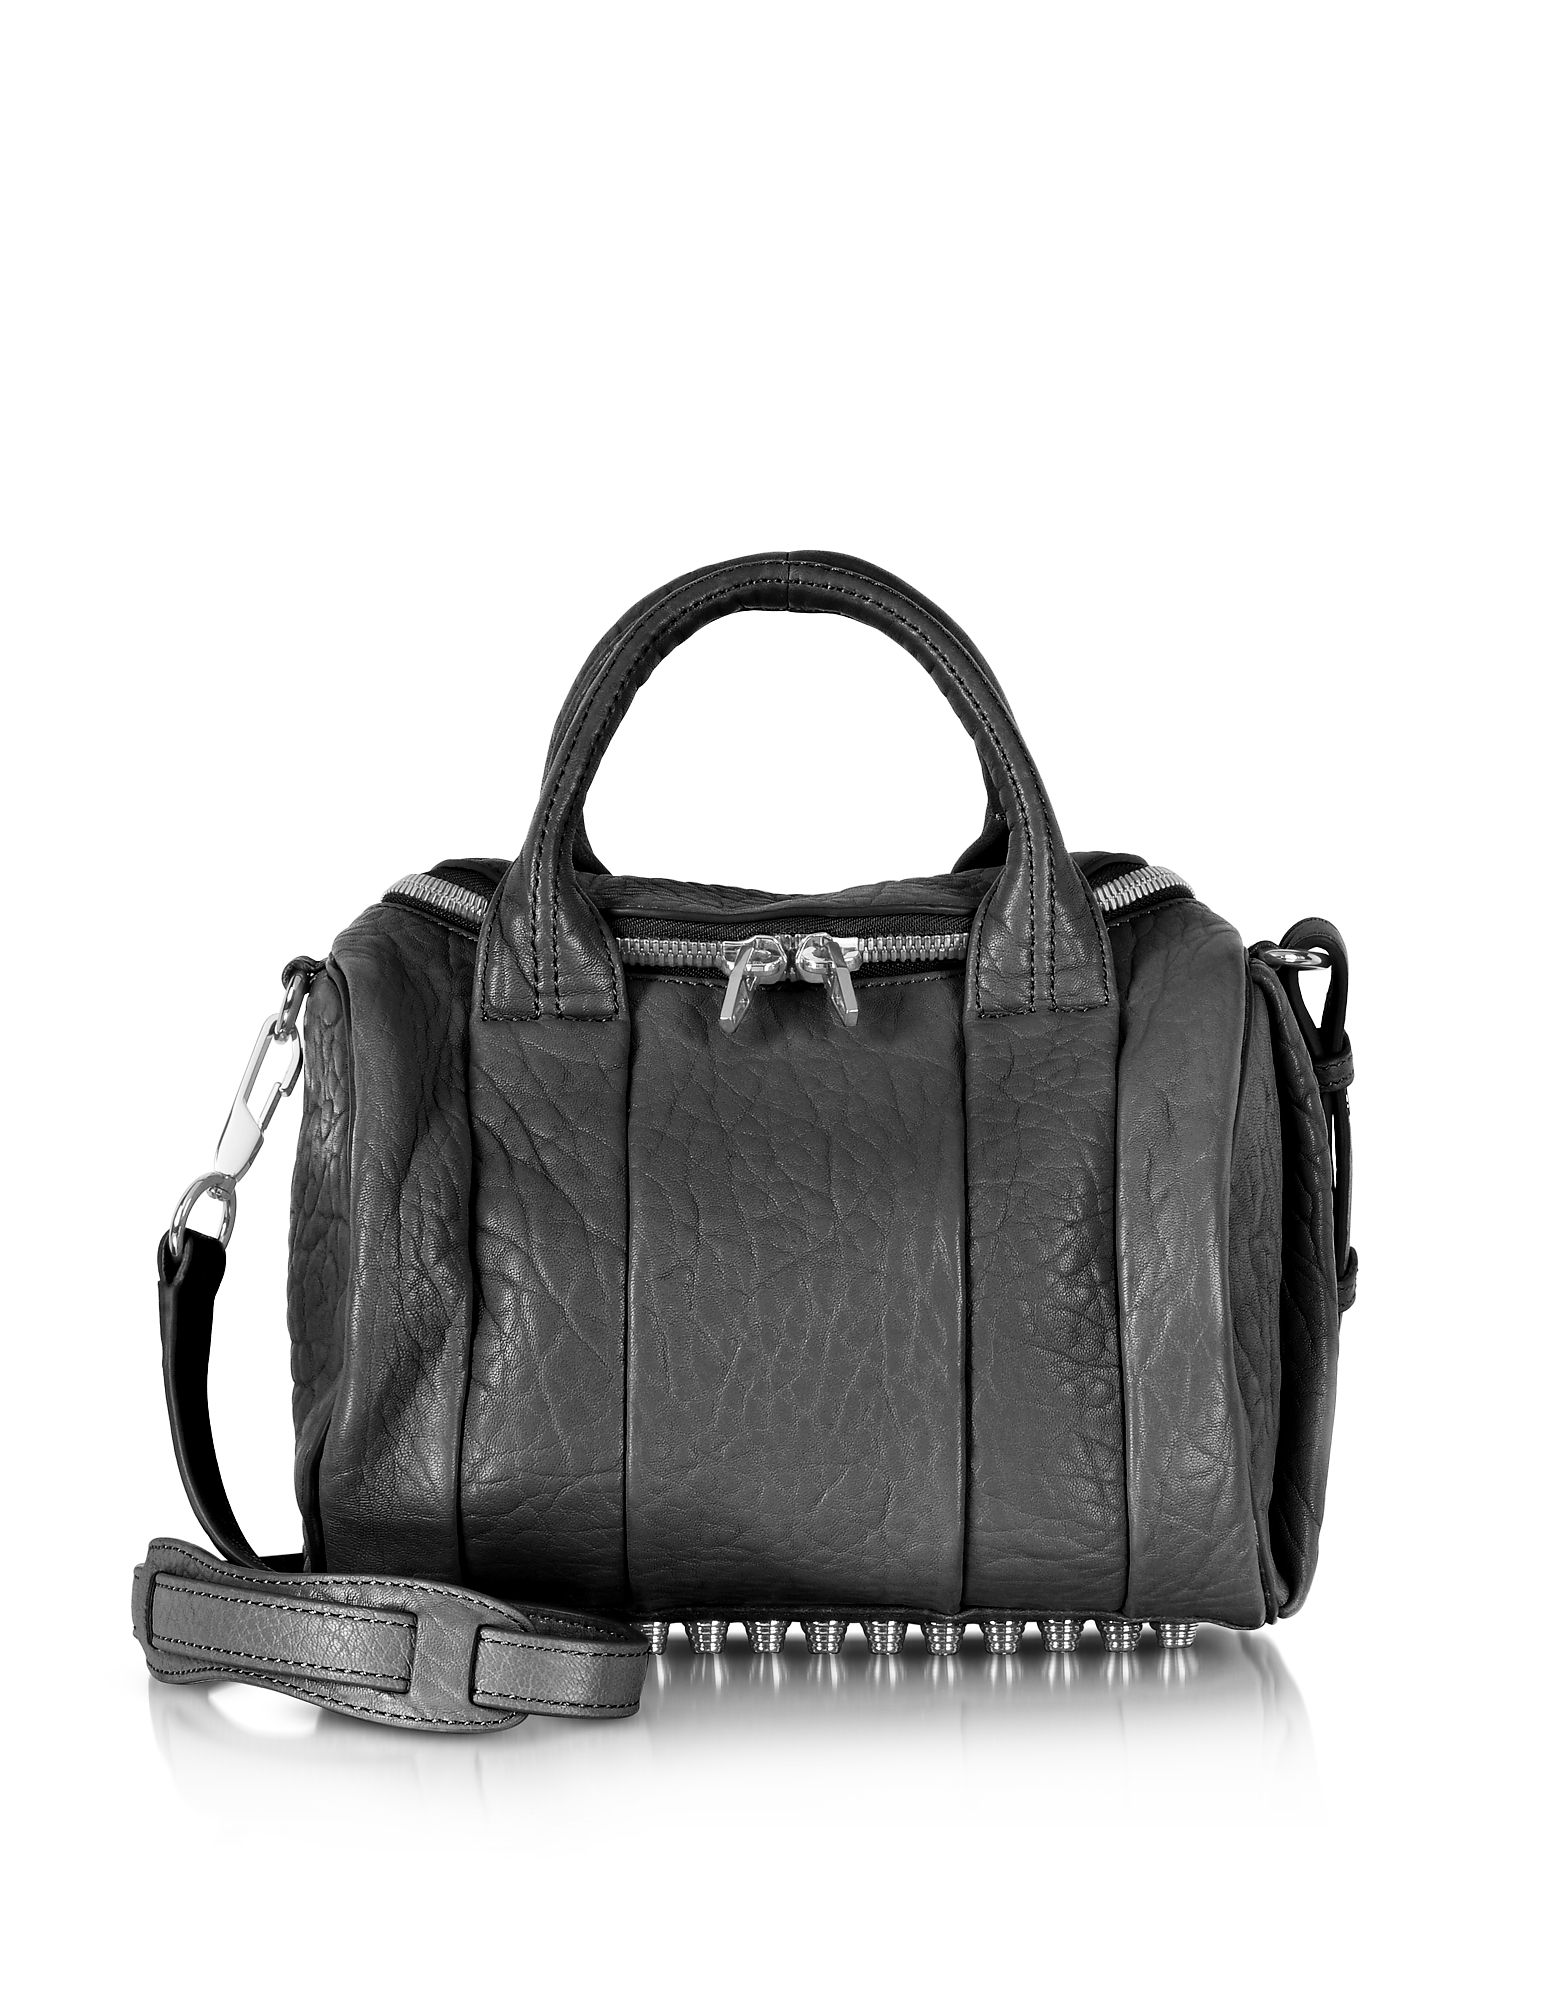 Alexander Wang Handbags, Rockie Black Pebble Leather Satchel Bag w/Rhodium Studs